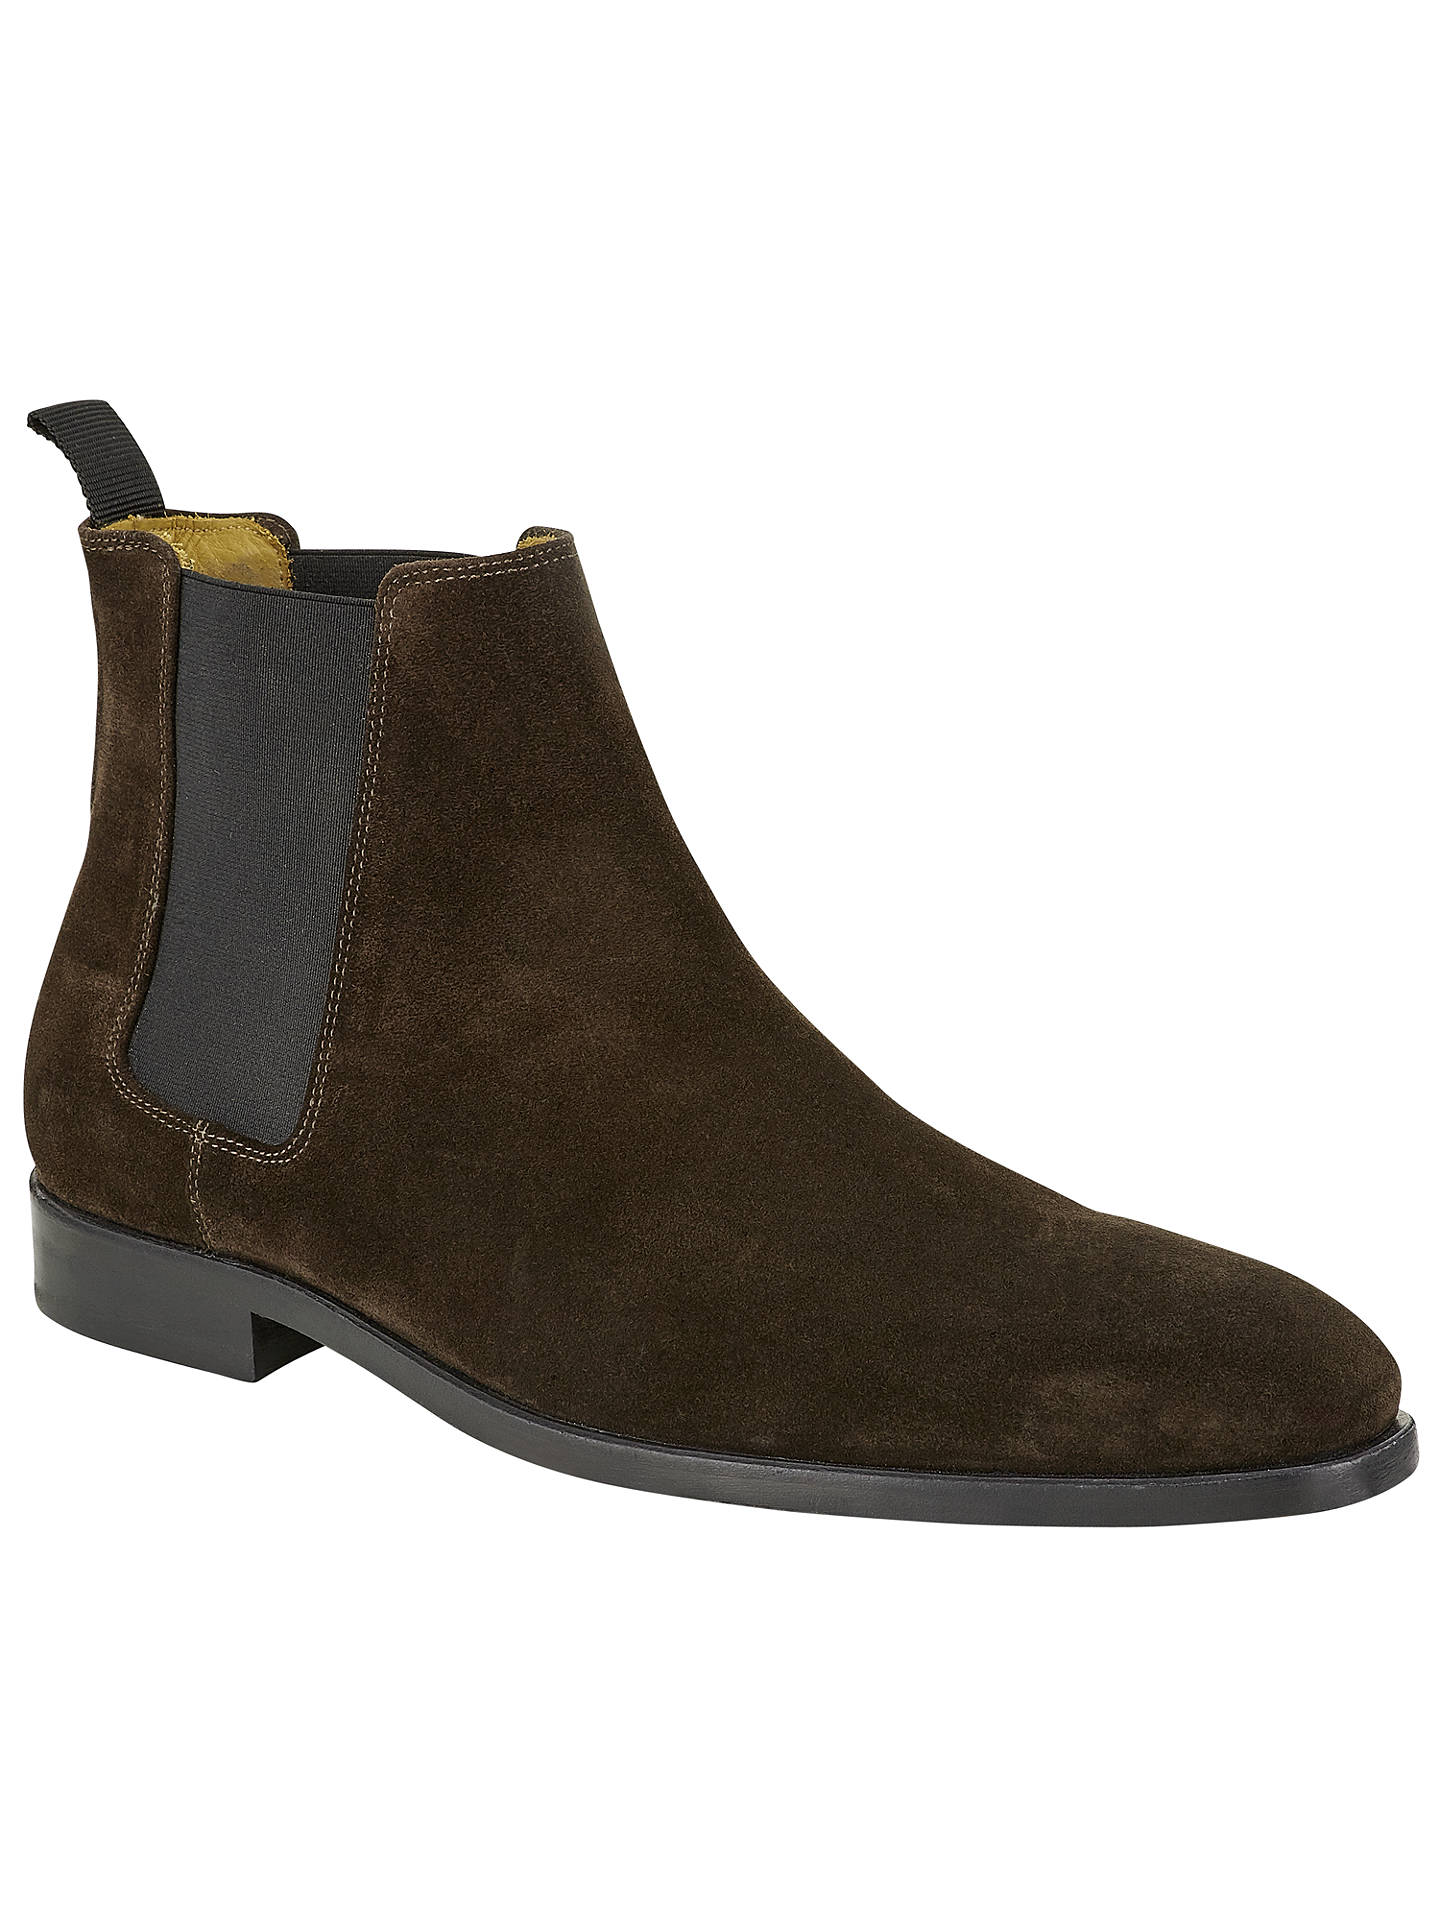 prevalent hot-selling cheap half off Paul Smith Gerald Chelsea Boots, Brown at John Lewis & Partners